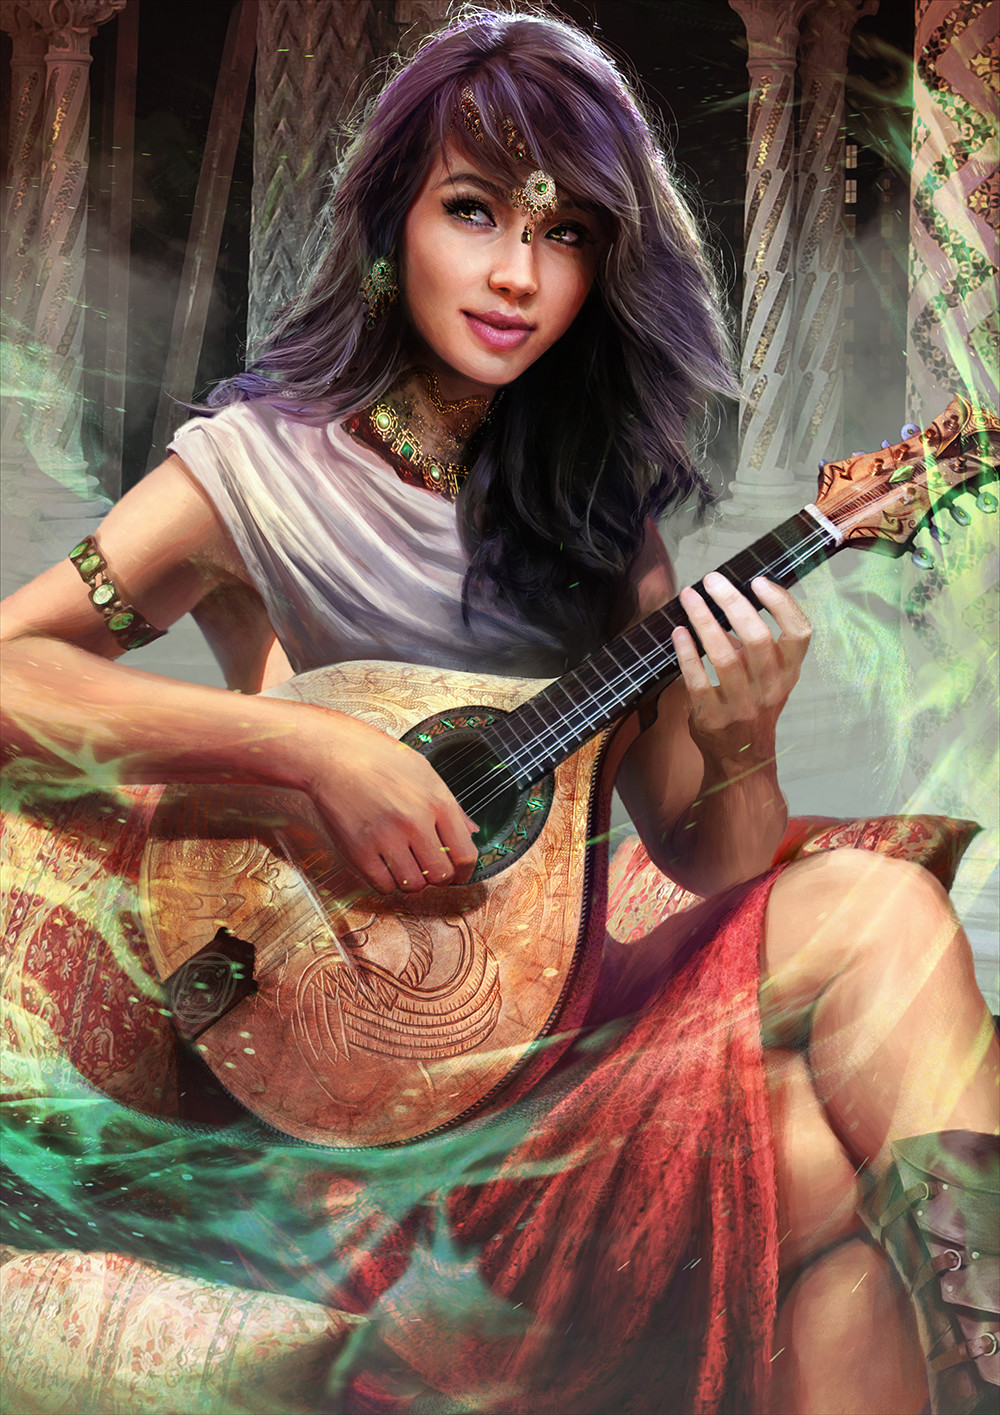 This art piece was already named Jade the BArd, Another SIgn? ArtWork Credit to  Guilherme Batisa